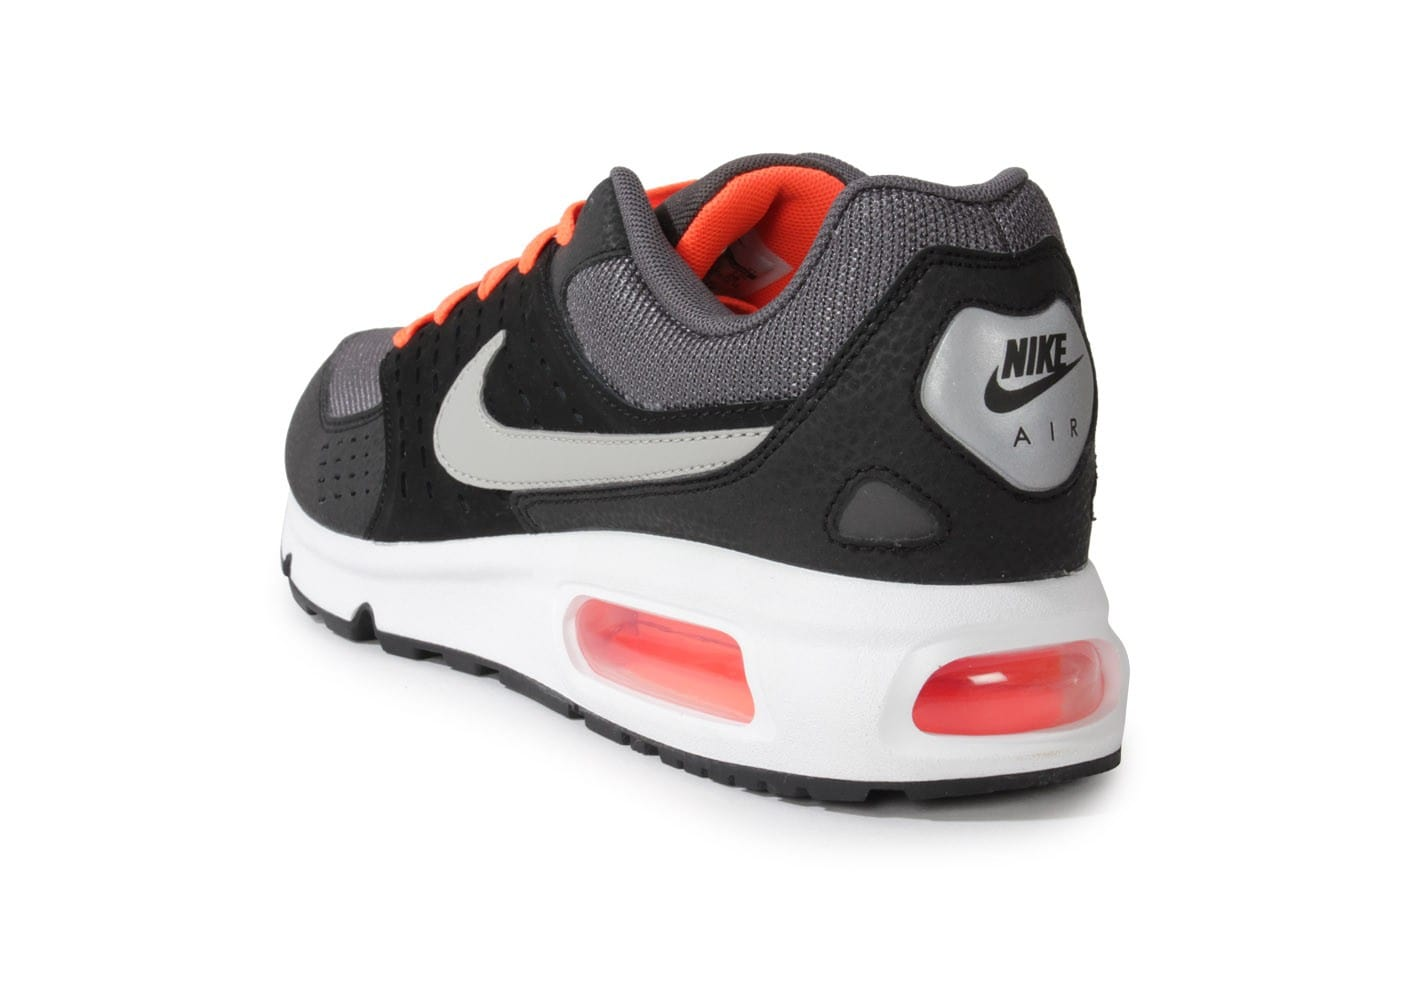 nike air max solace grise chaussures homme chausport. Black Bedroom Furniture Sets. Home Design Ideas